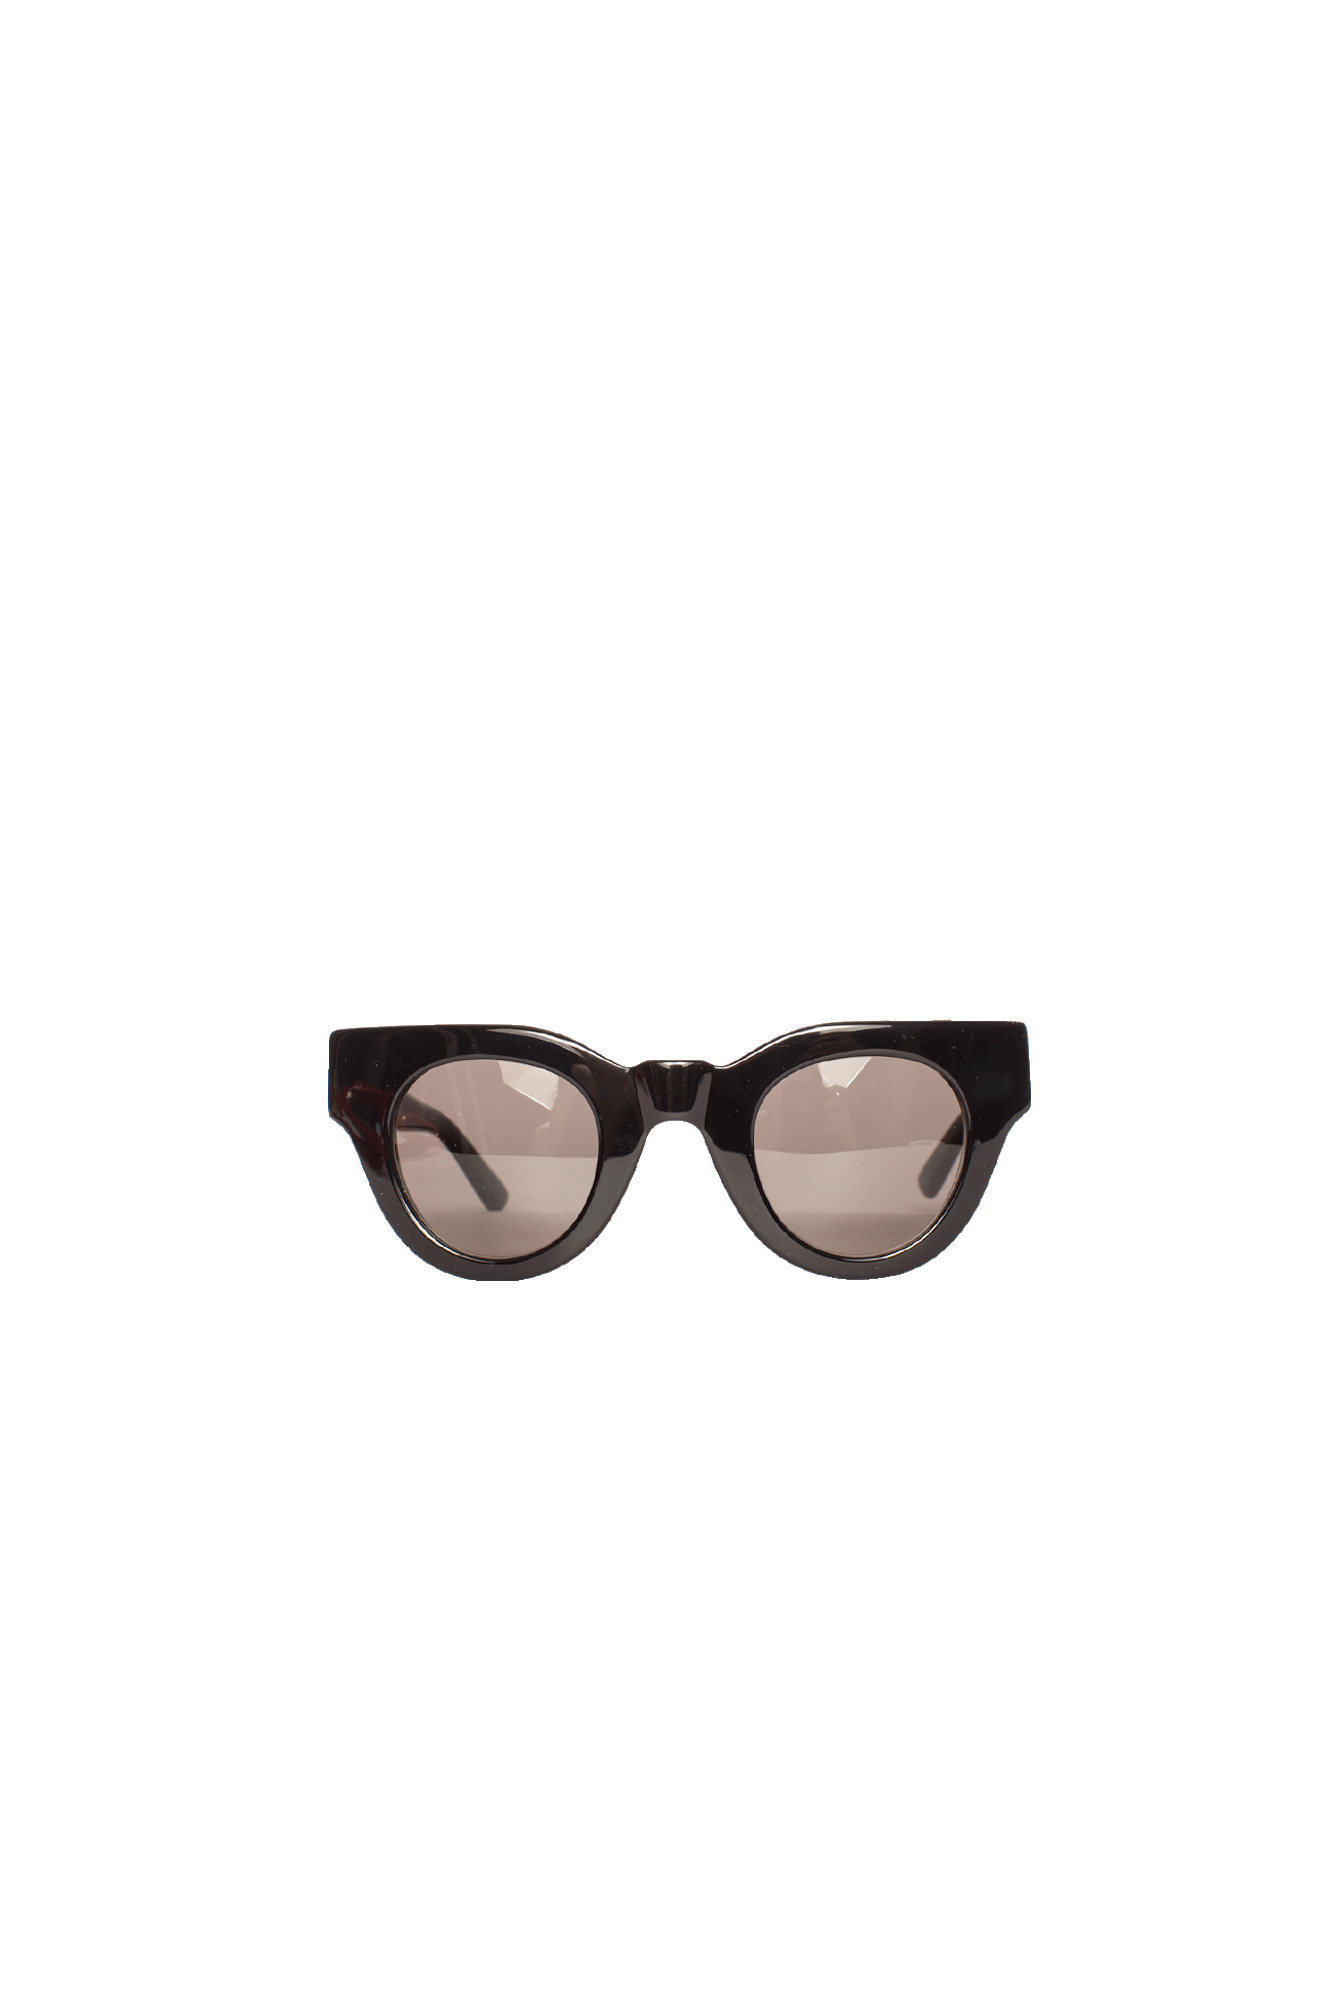 Sun Buddies Sunglasses MAUD Black 9004.10.00#MAUD#C0010#OS - One Block Down